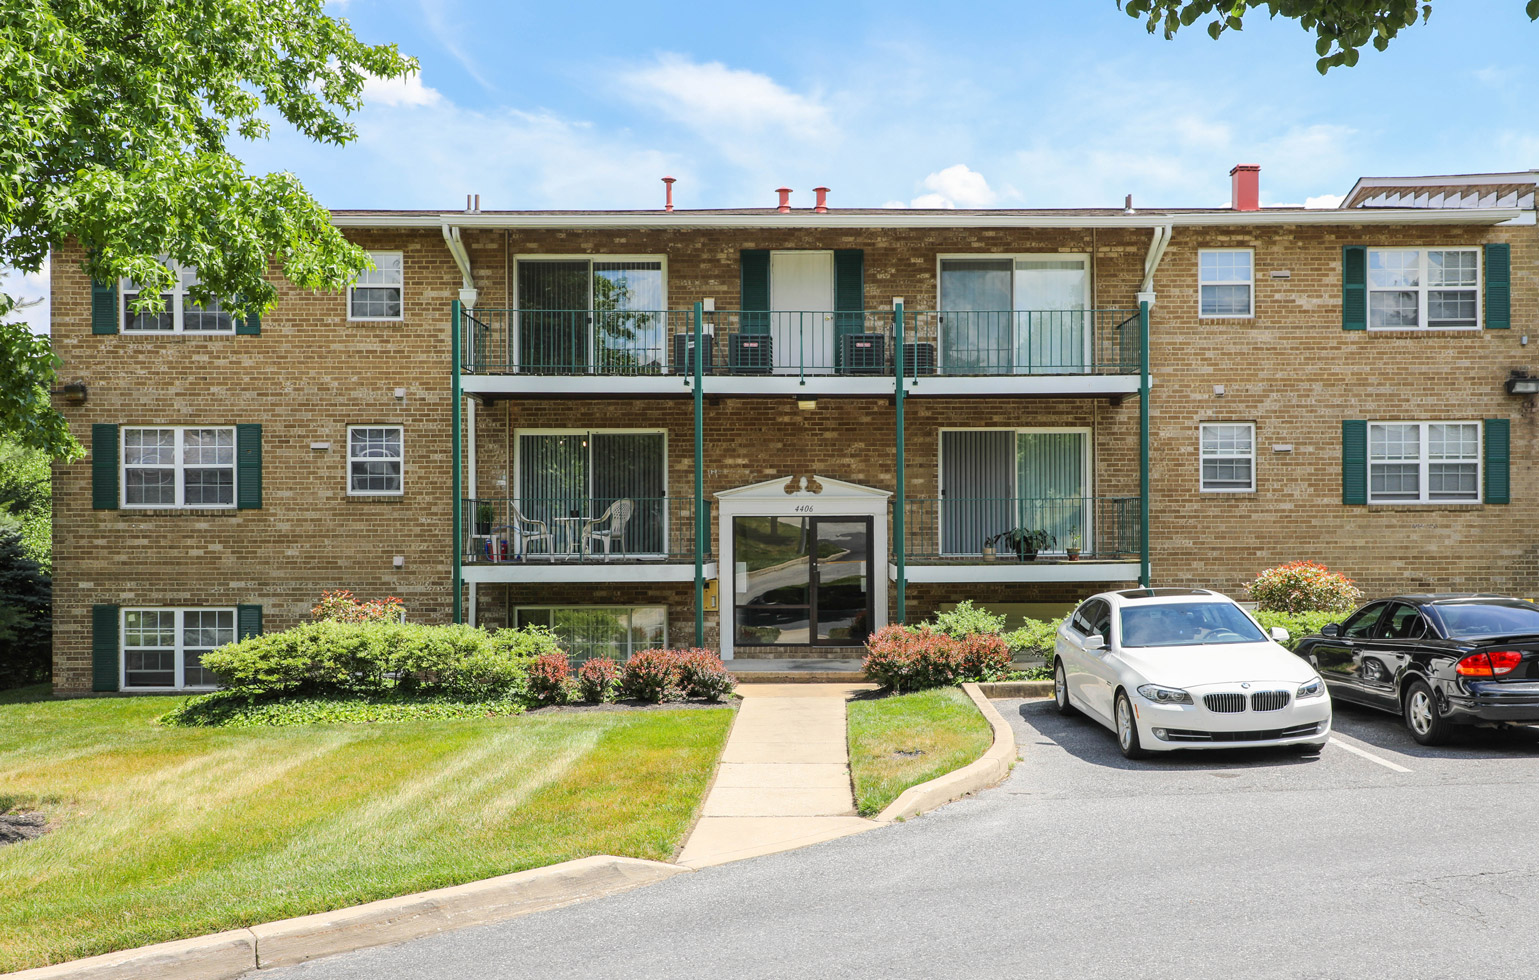 park apartments | apartments in 4409 moravia rd - baltimore md